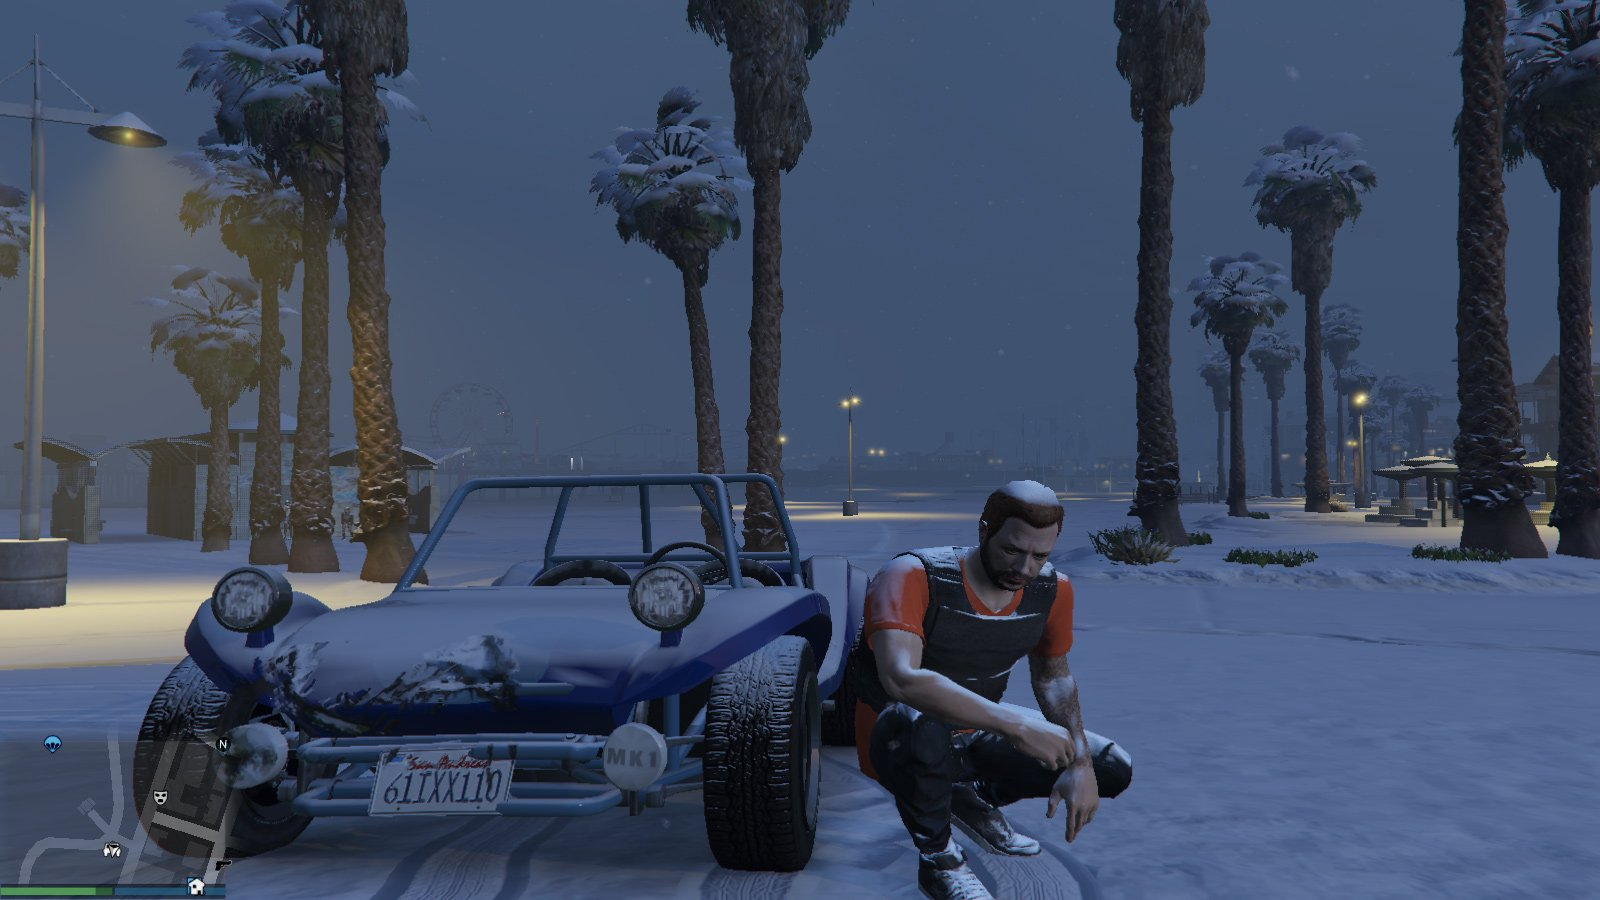 Some GTA V mods are snow joke